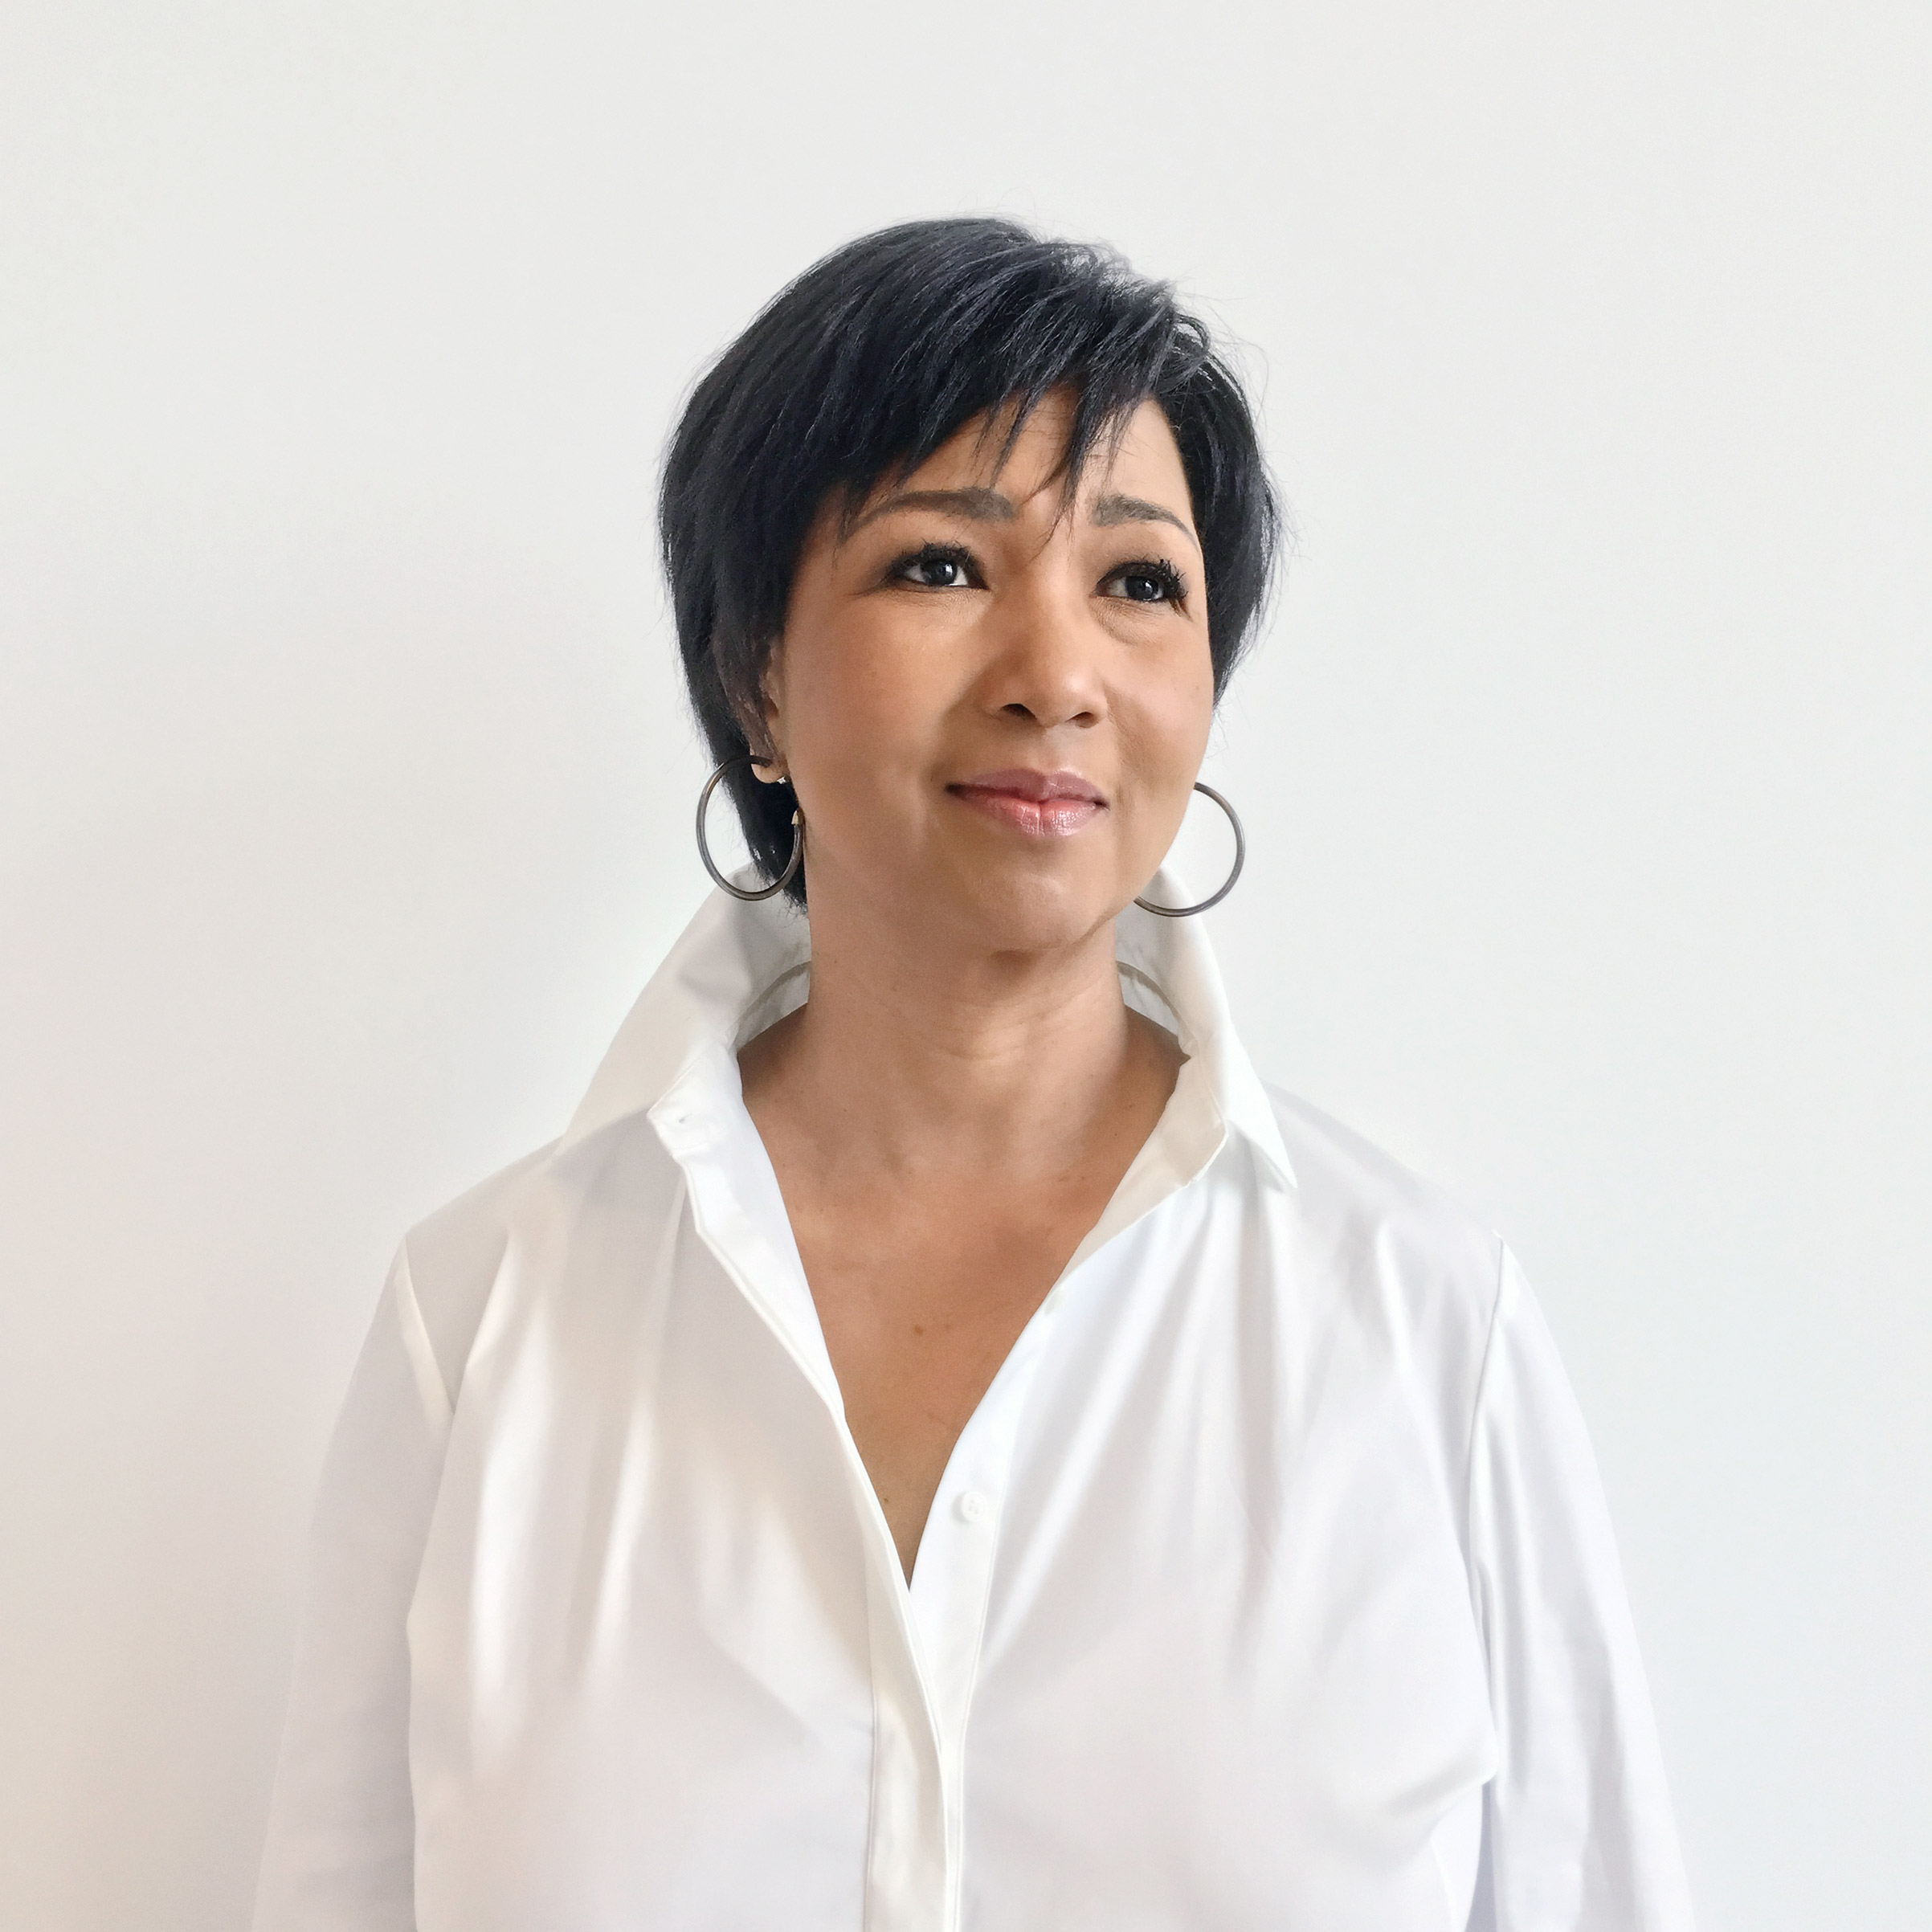 Portrait of Mae Jemison, photographed at the National Space Biomedical Research Institute in Houston, TX, November 2, 2016.